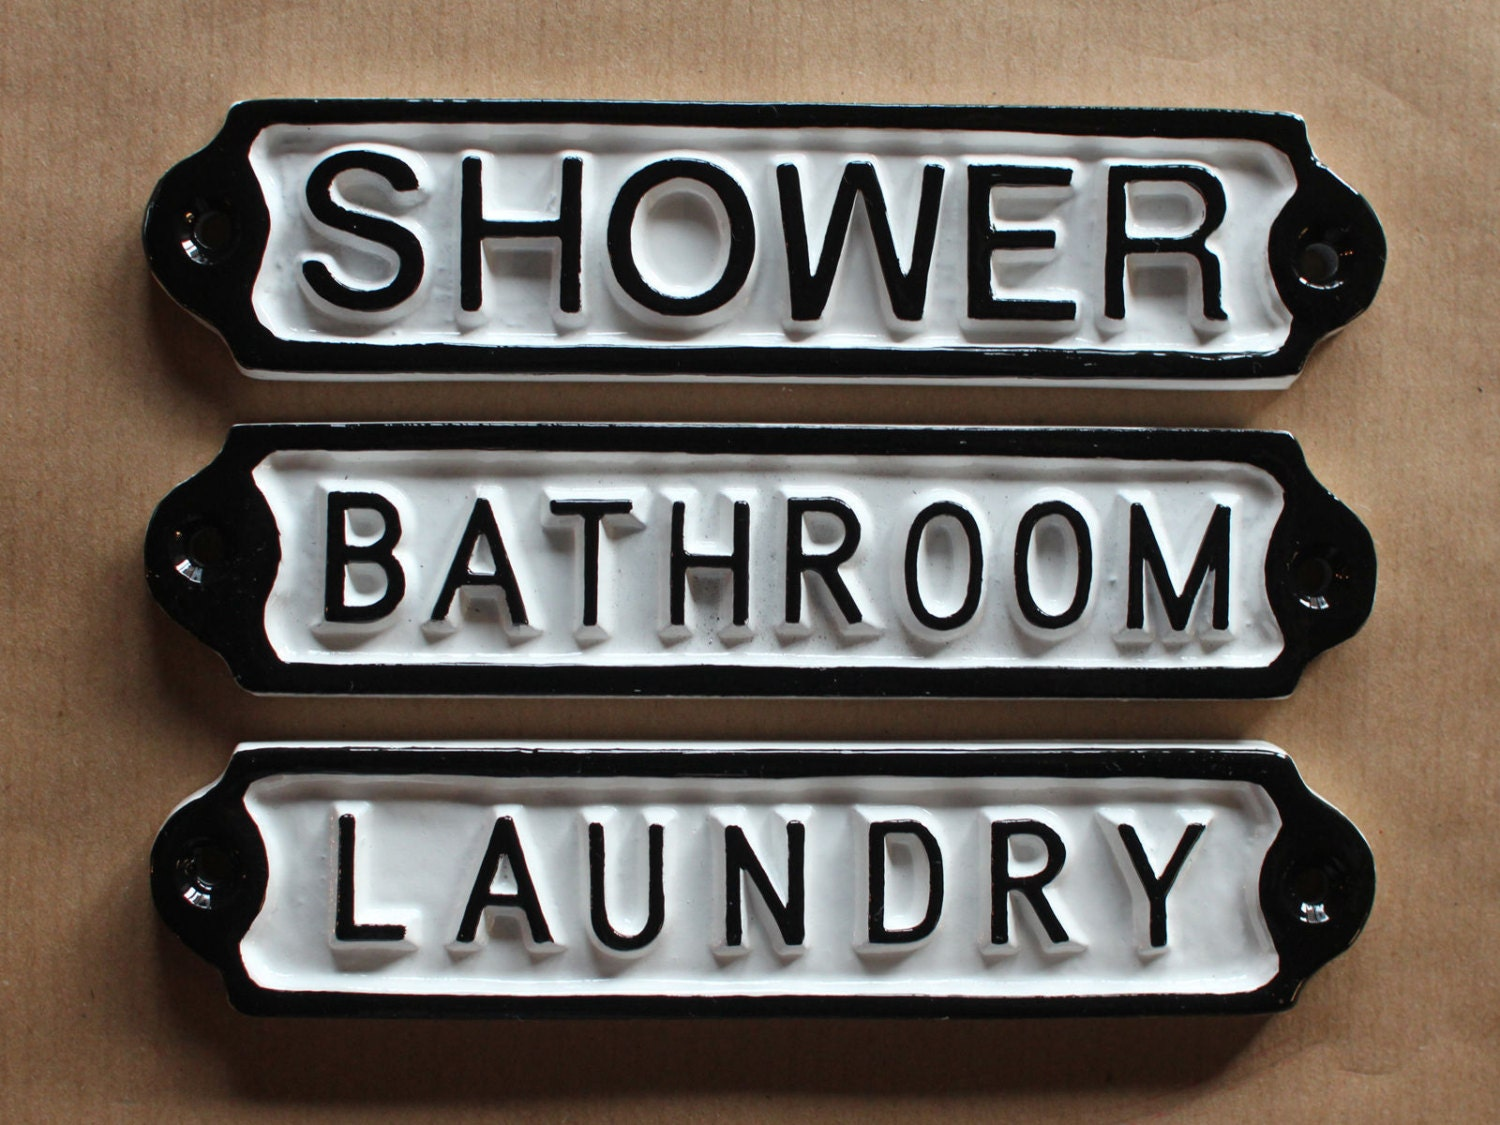 ?zoom & Antique Bathroom Shower Laundry Door Signs Shabby Chic